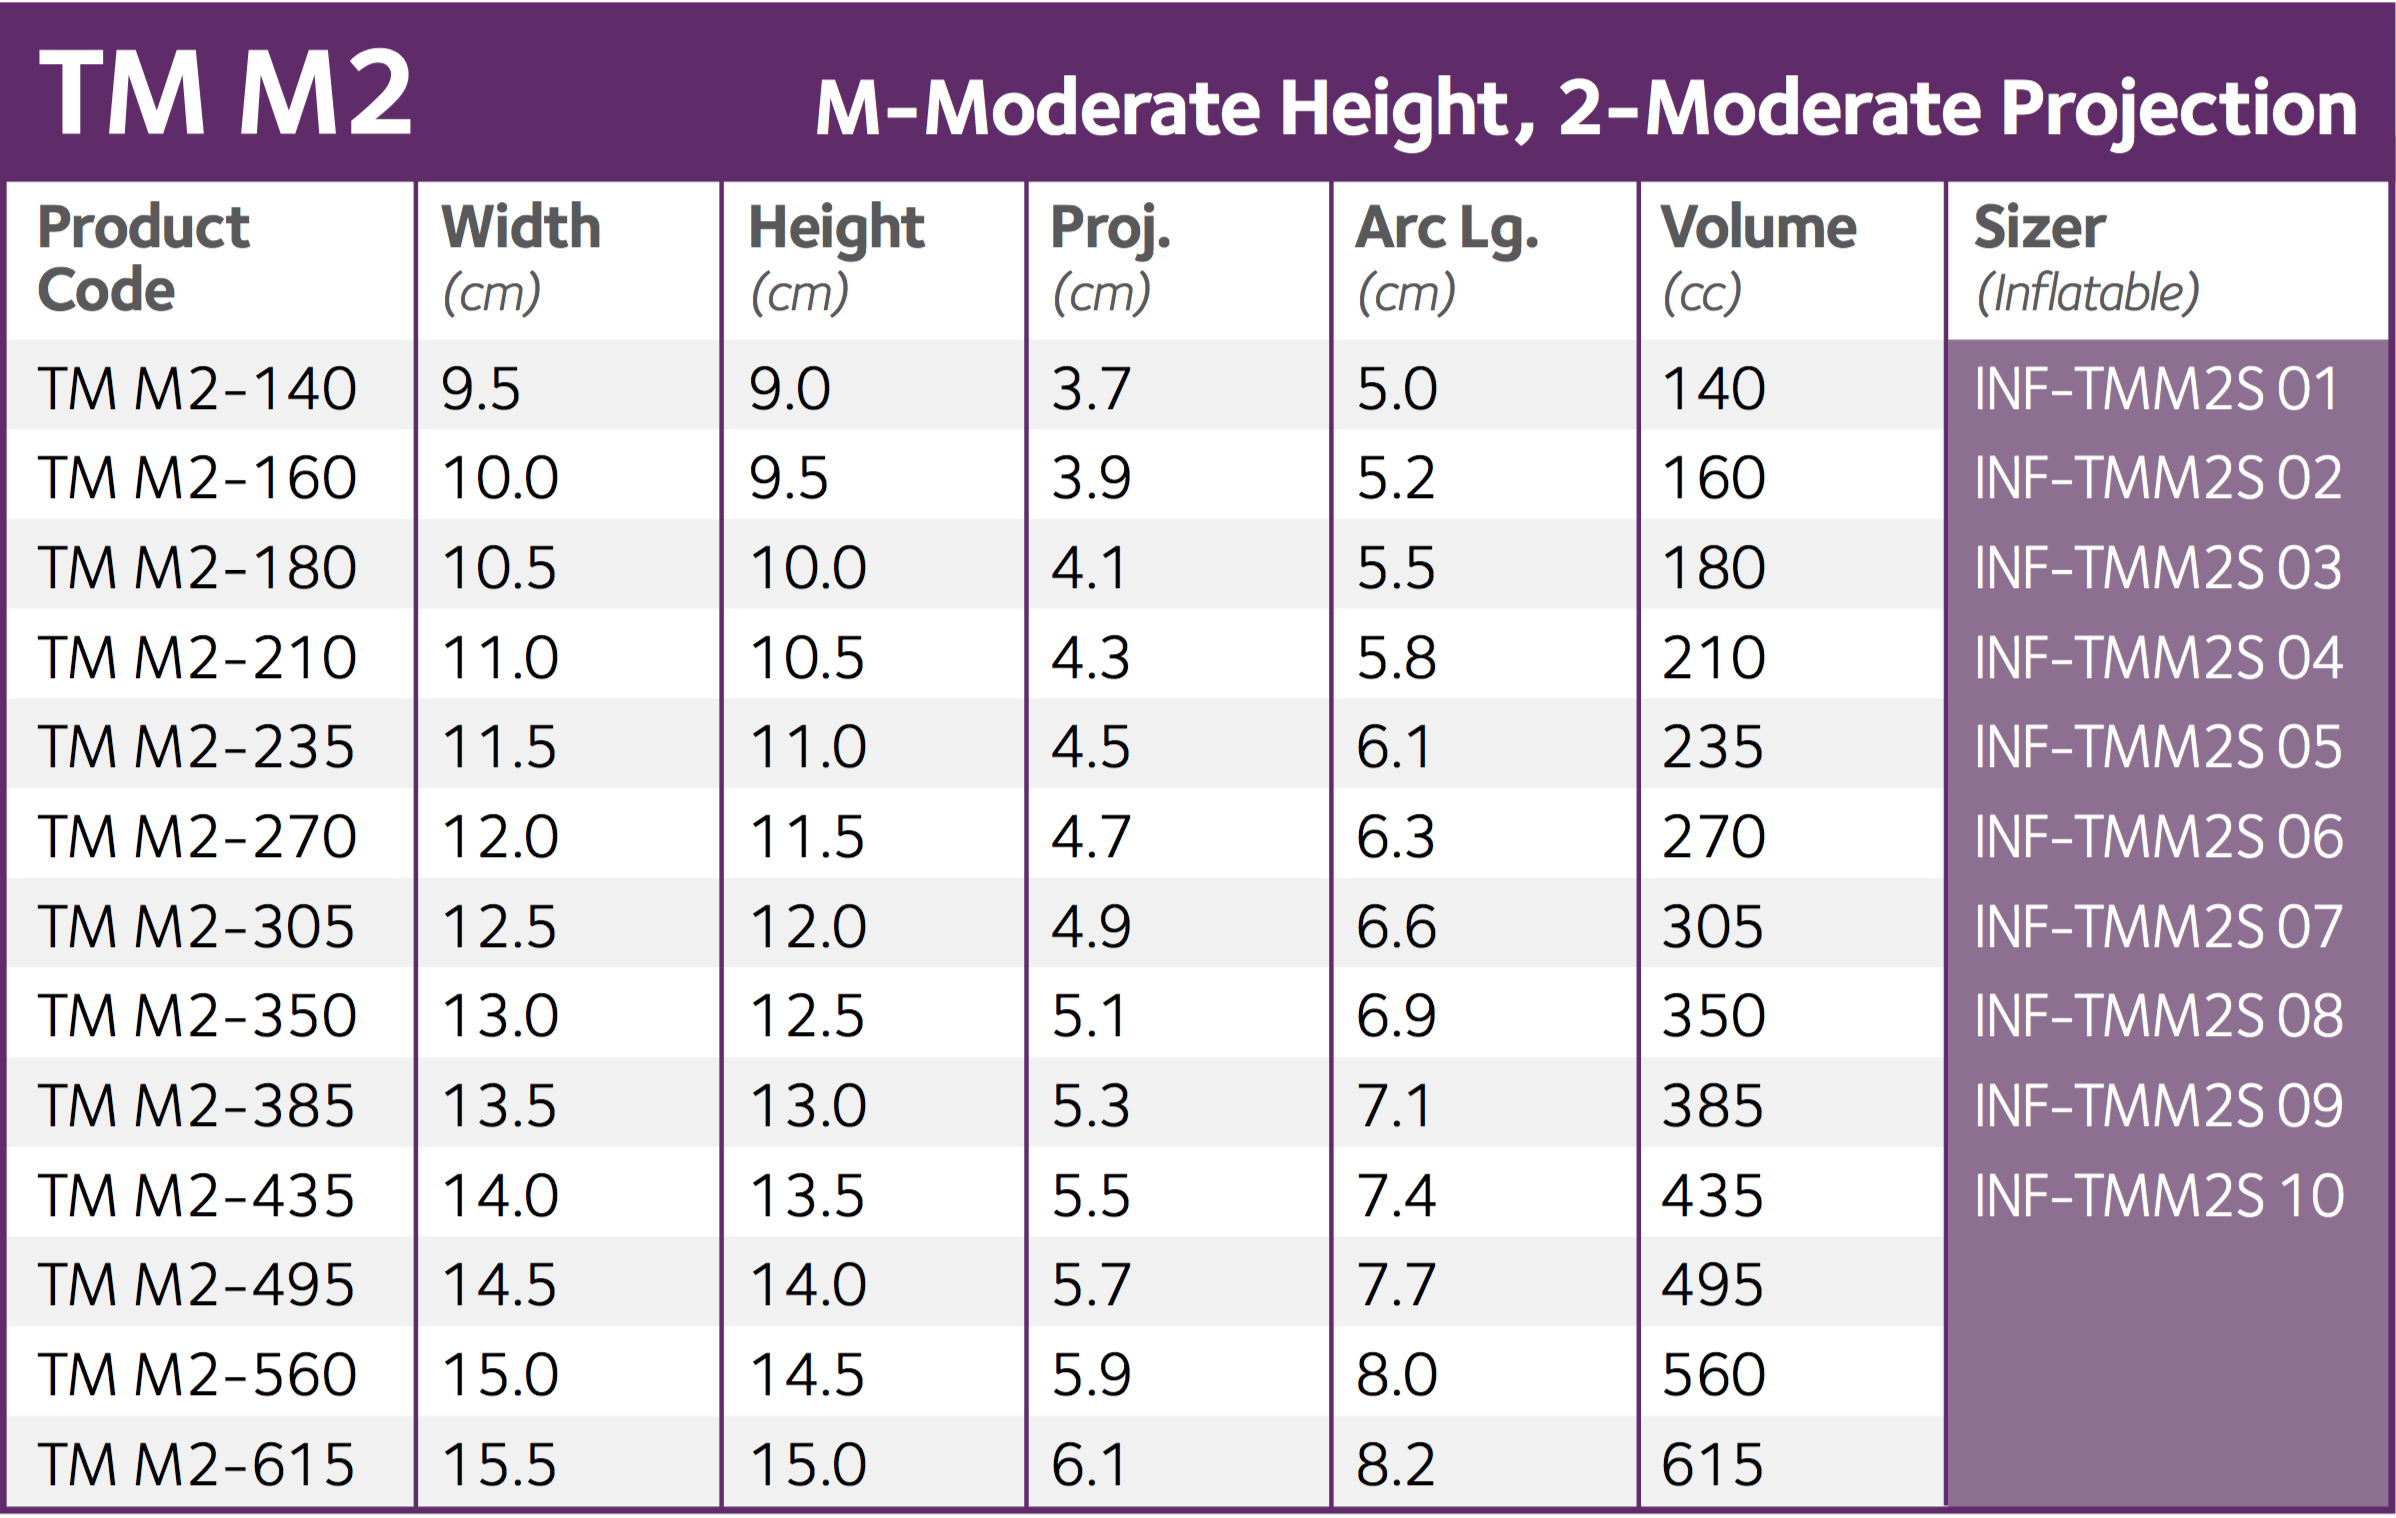 EuroSilicone TM M2 M-Moderate Height, 2-Moderate Projection